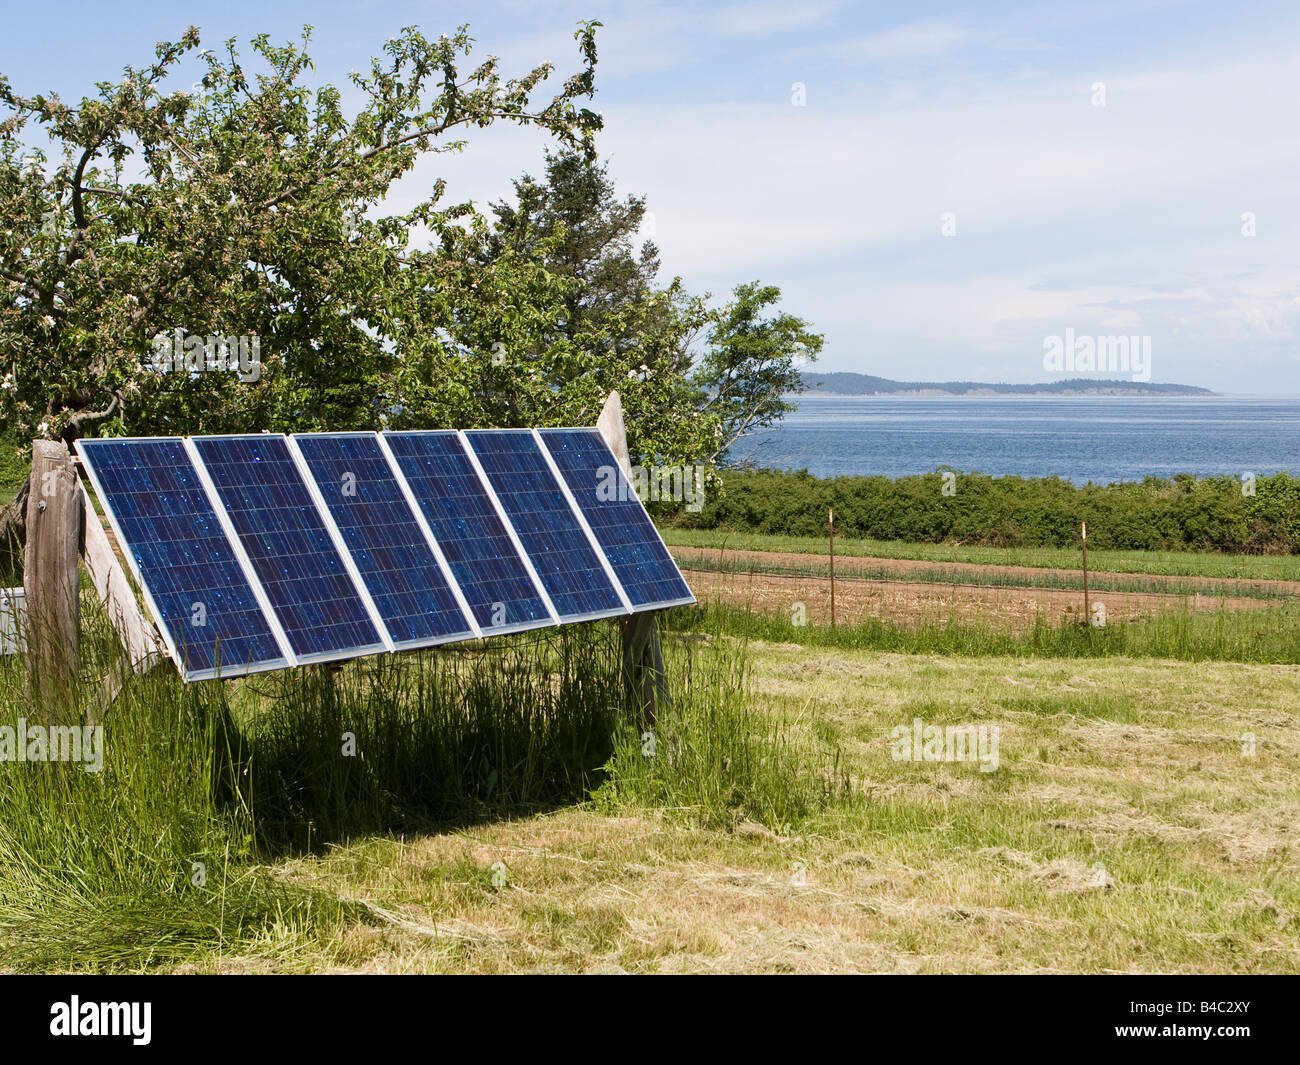 A set of solar panels located on an island provide a source of renewable energy. - Stock Image